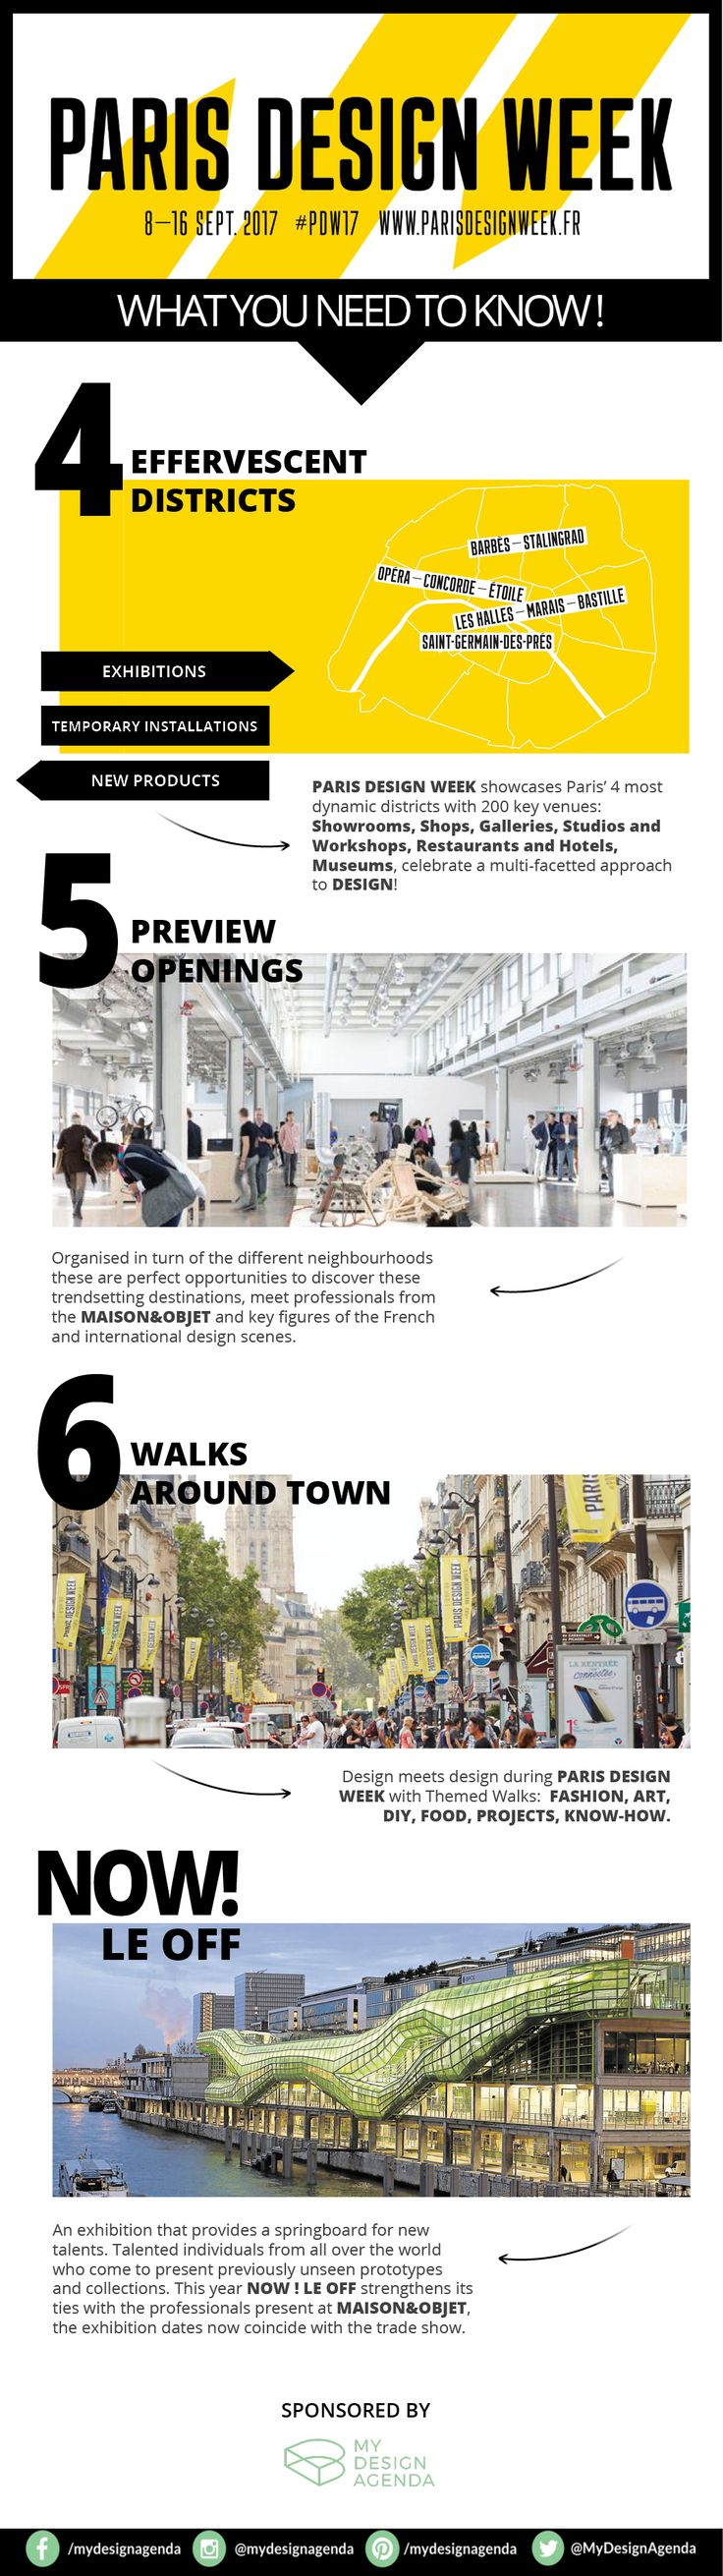 Paris Design Week 2017 will take place from September 8 to 16, with an energetic program that encompasses 4 different districts, 6 themed walks, a series of debates and at least 100,000 visitors. The perfect opportunity to get to know the latest decor trends and to see things from another perception.